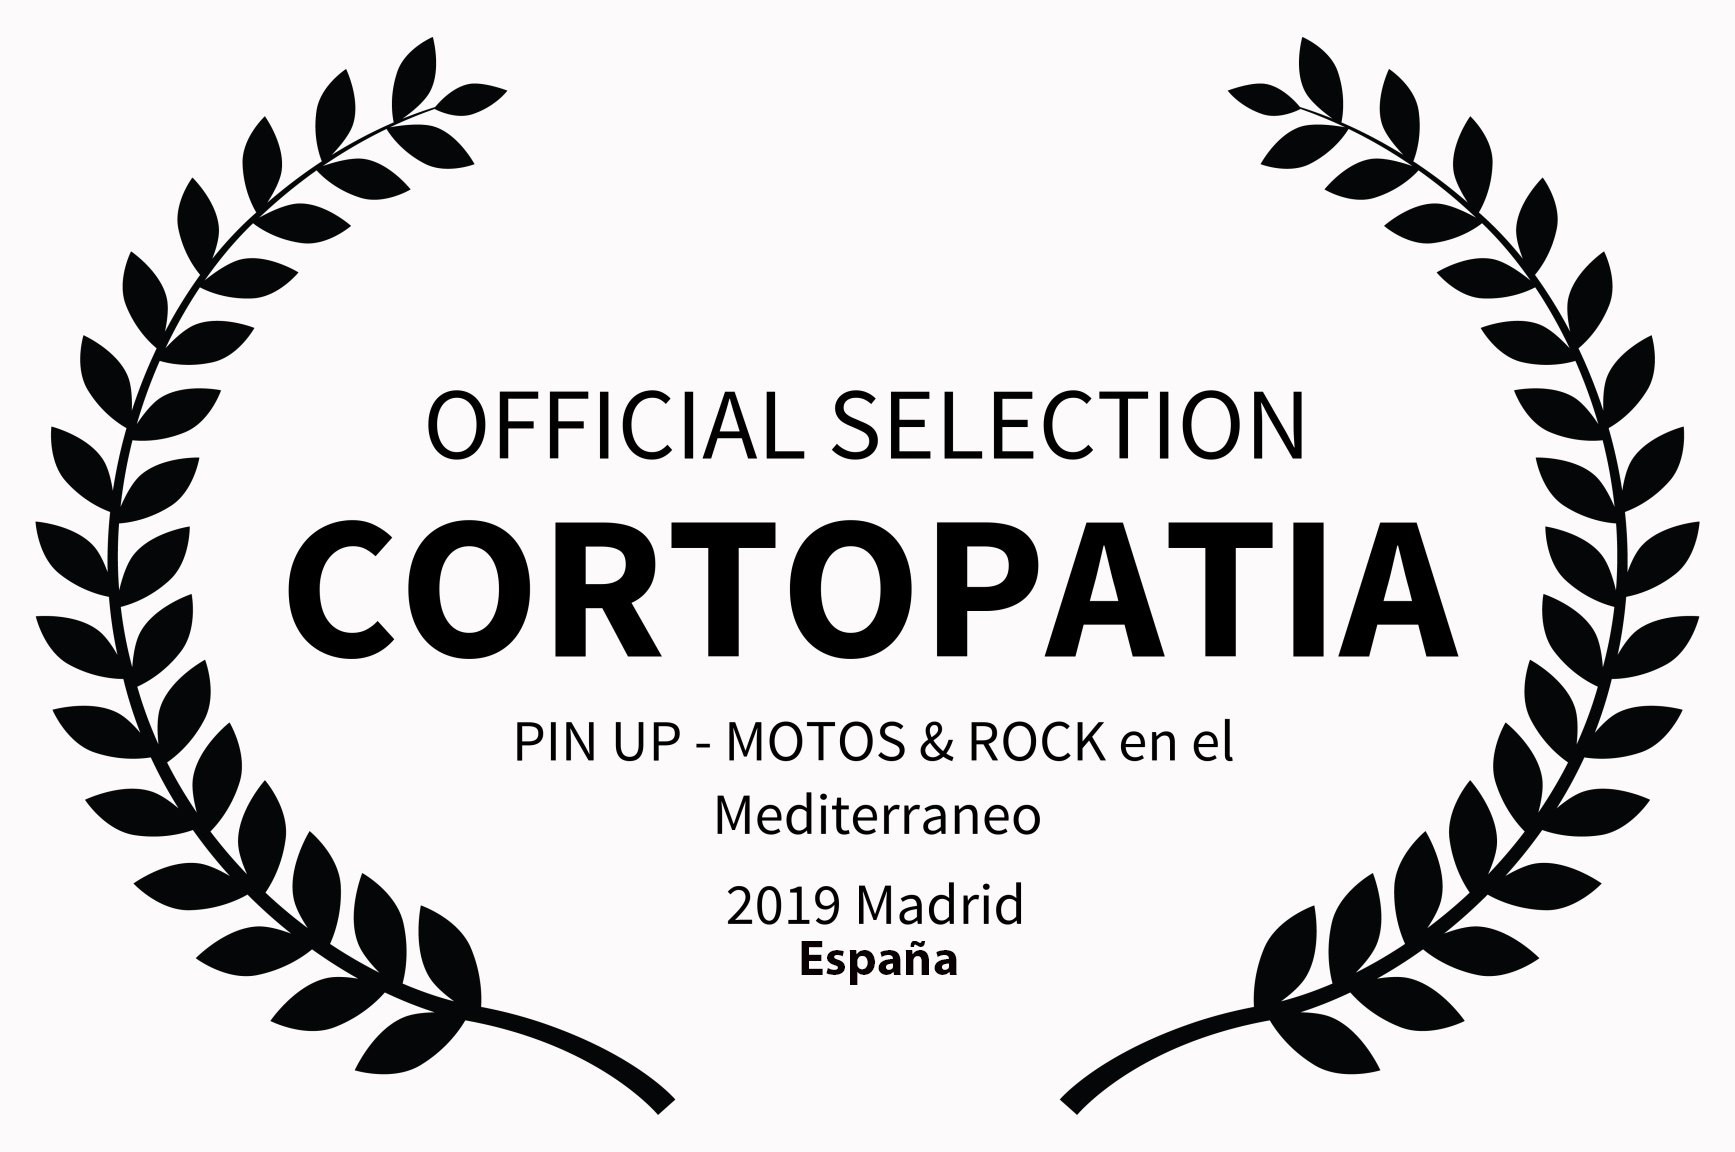 OFFICIAL SELECTION - CORTOPATIA -  PIN U